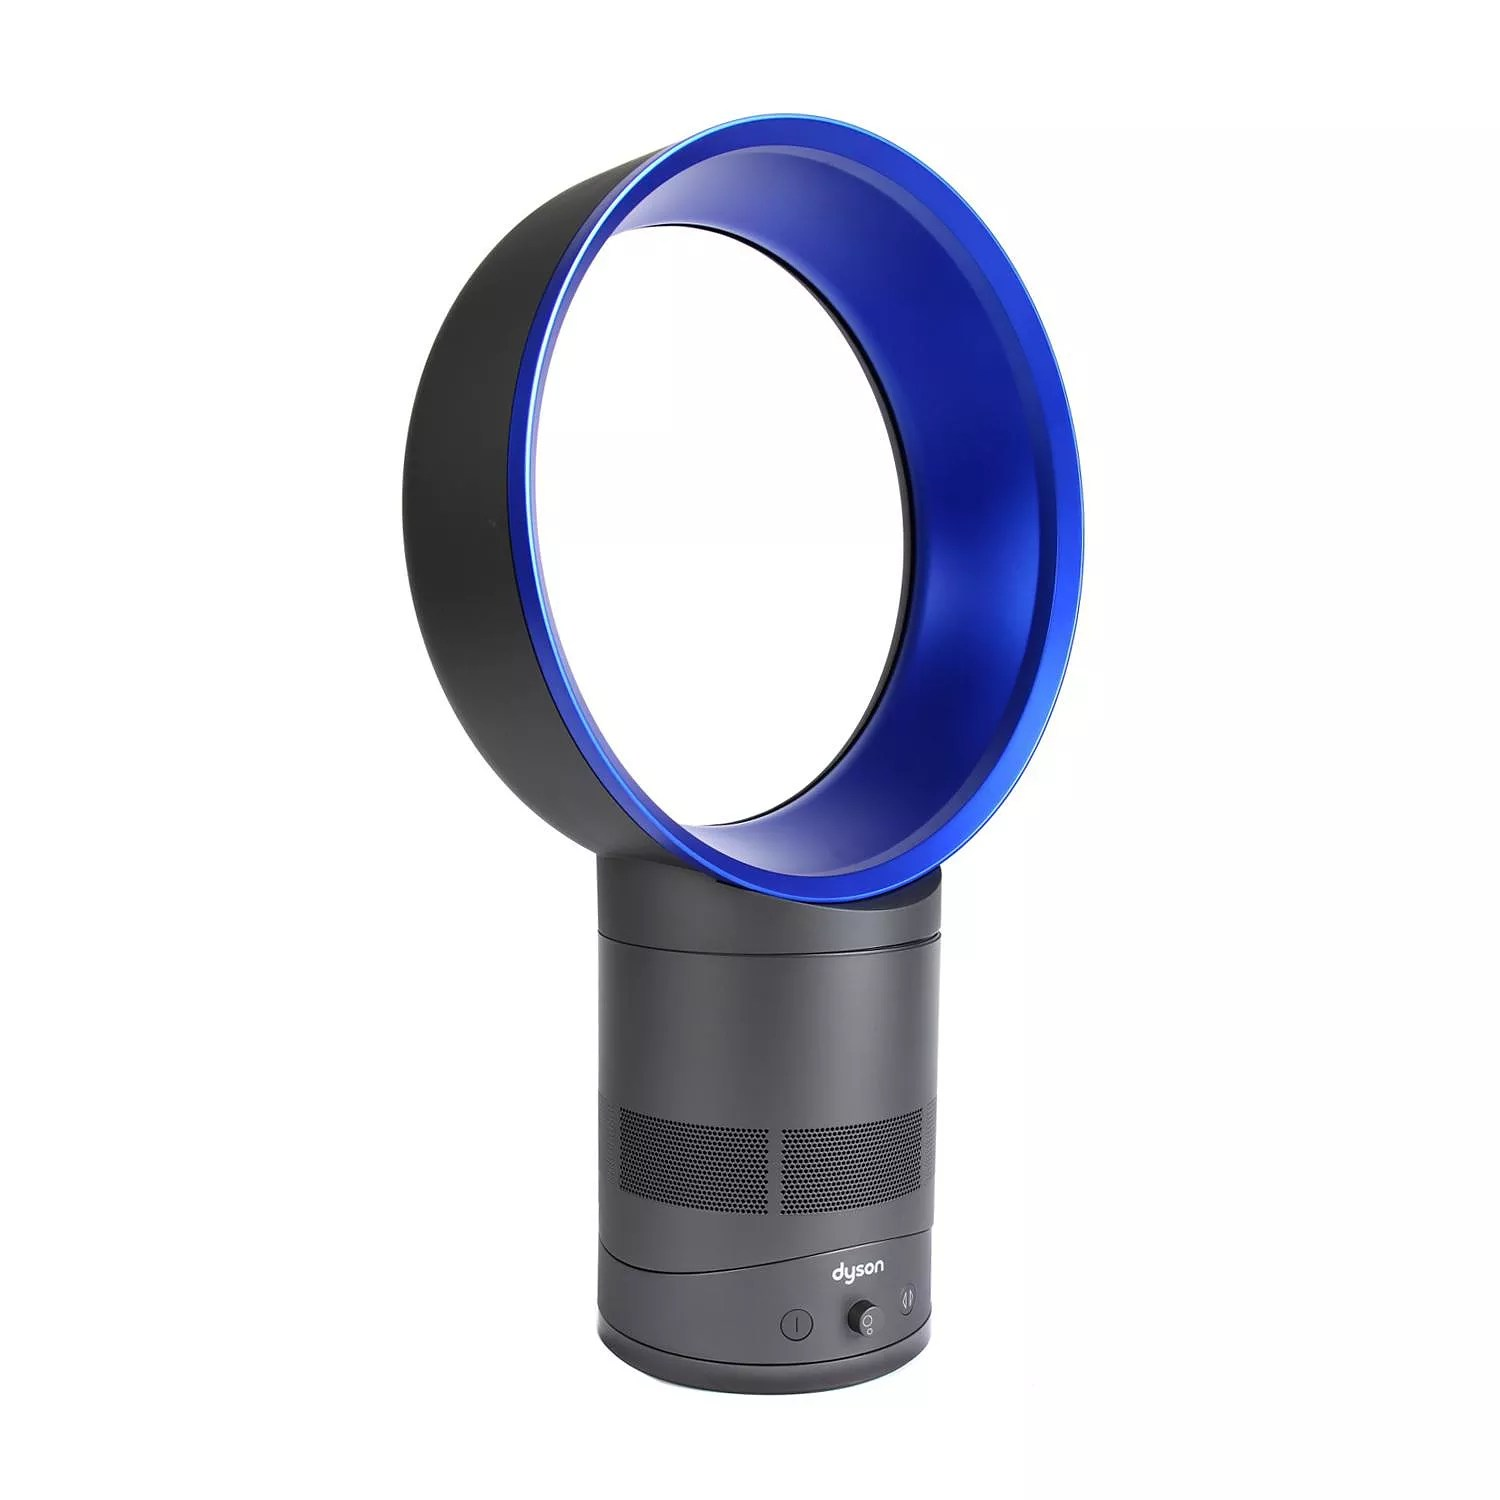 Dyson Ventilator Air Multiplier Fans By Dyson Design Is This